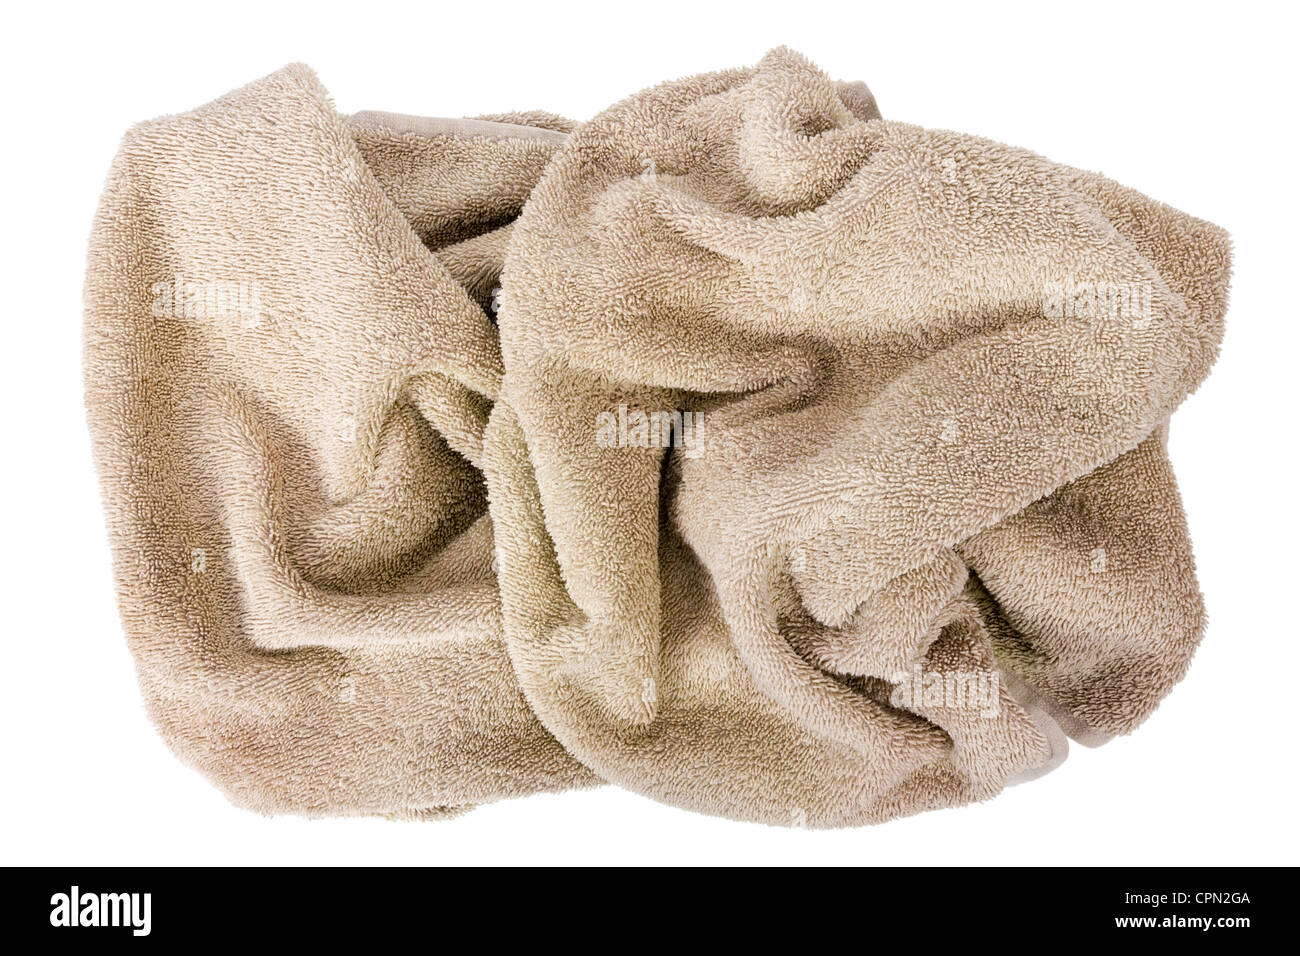 Abstract sculpture made of mass production terry towels beige. Isolated - Stock Image